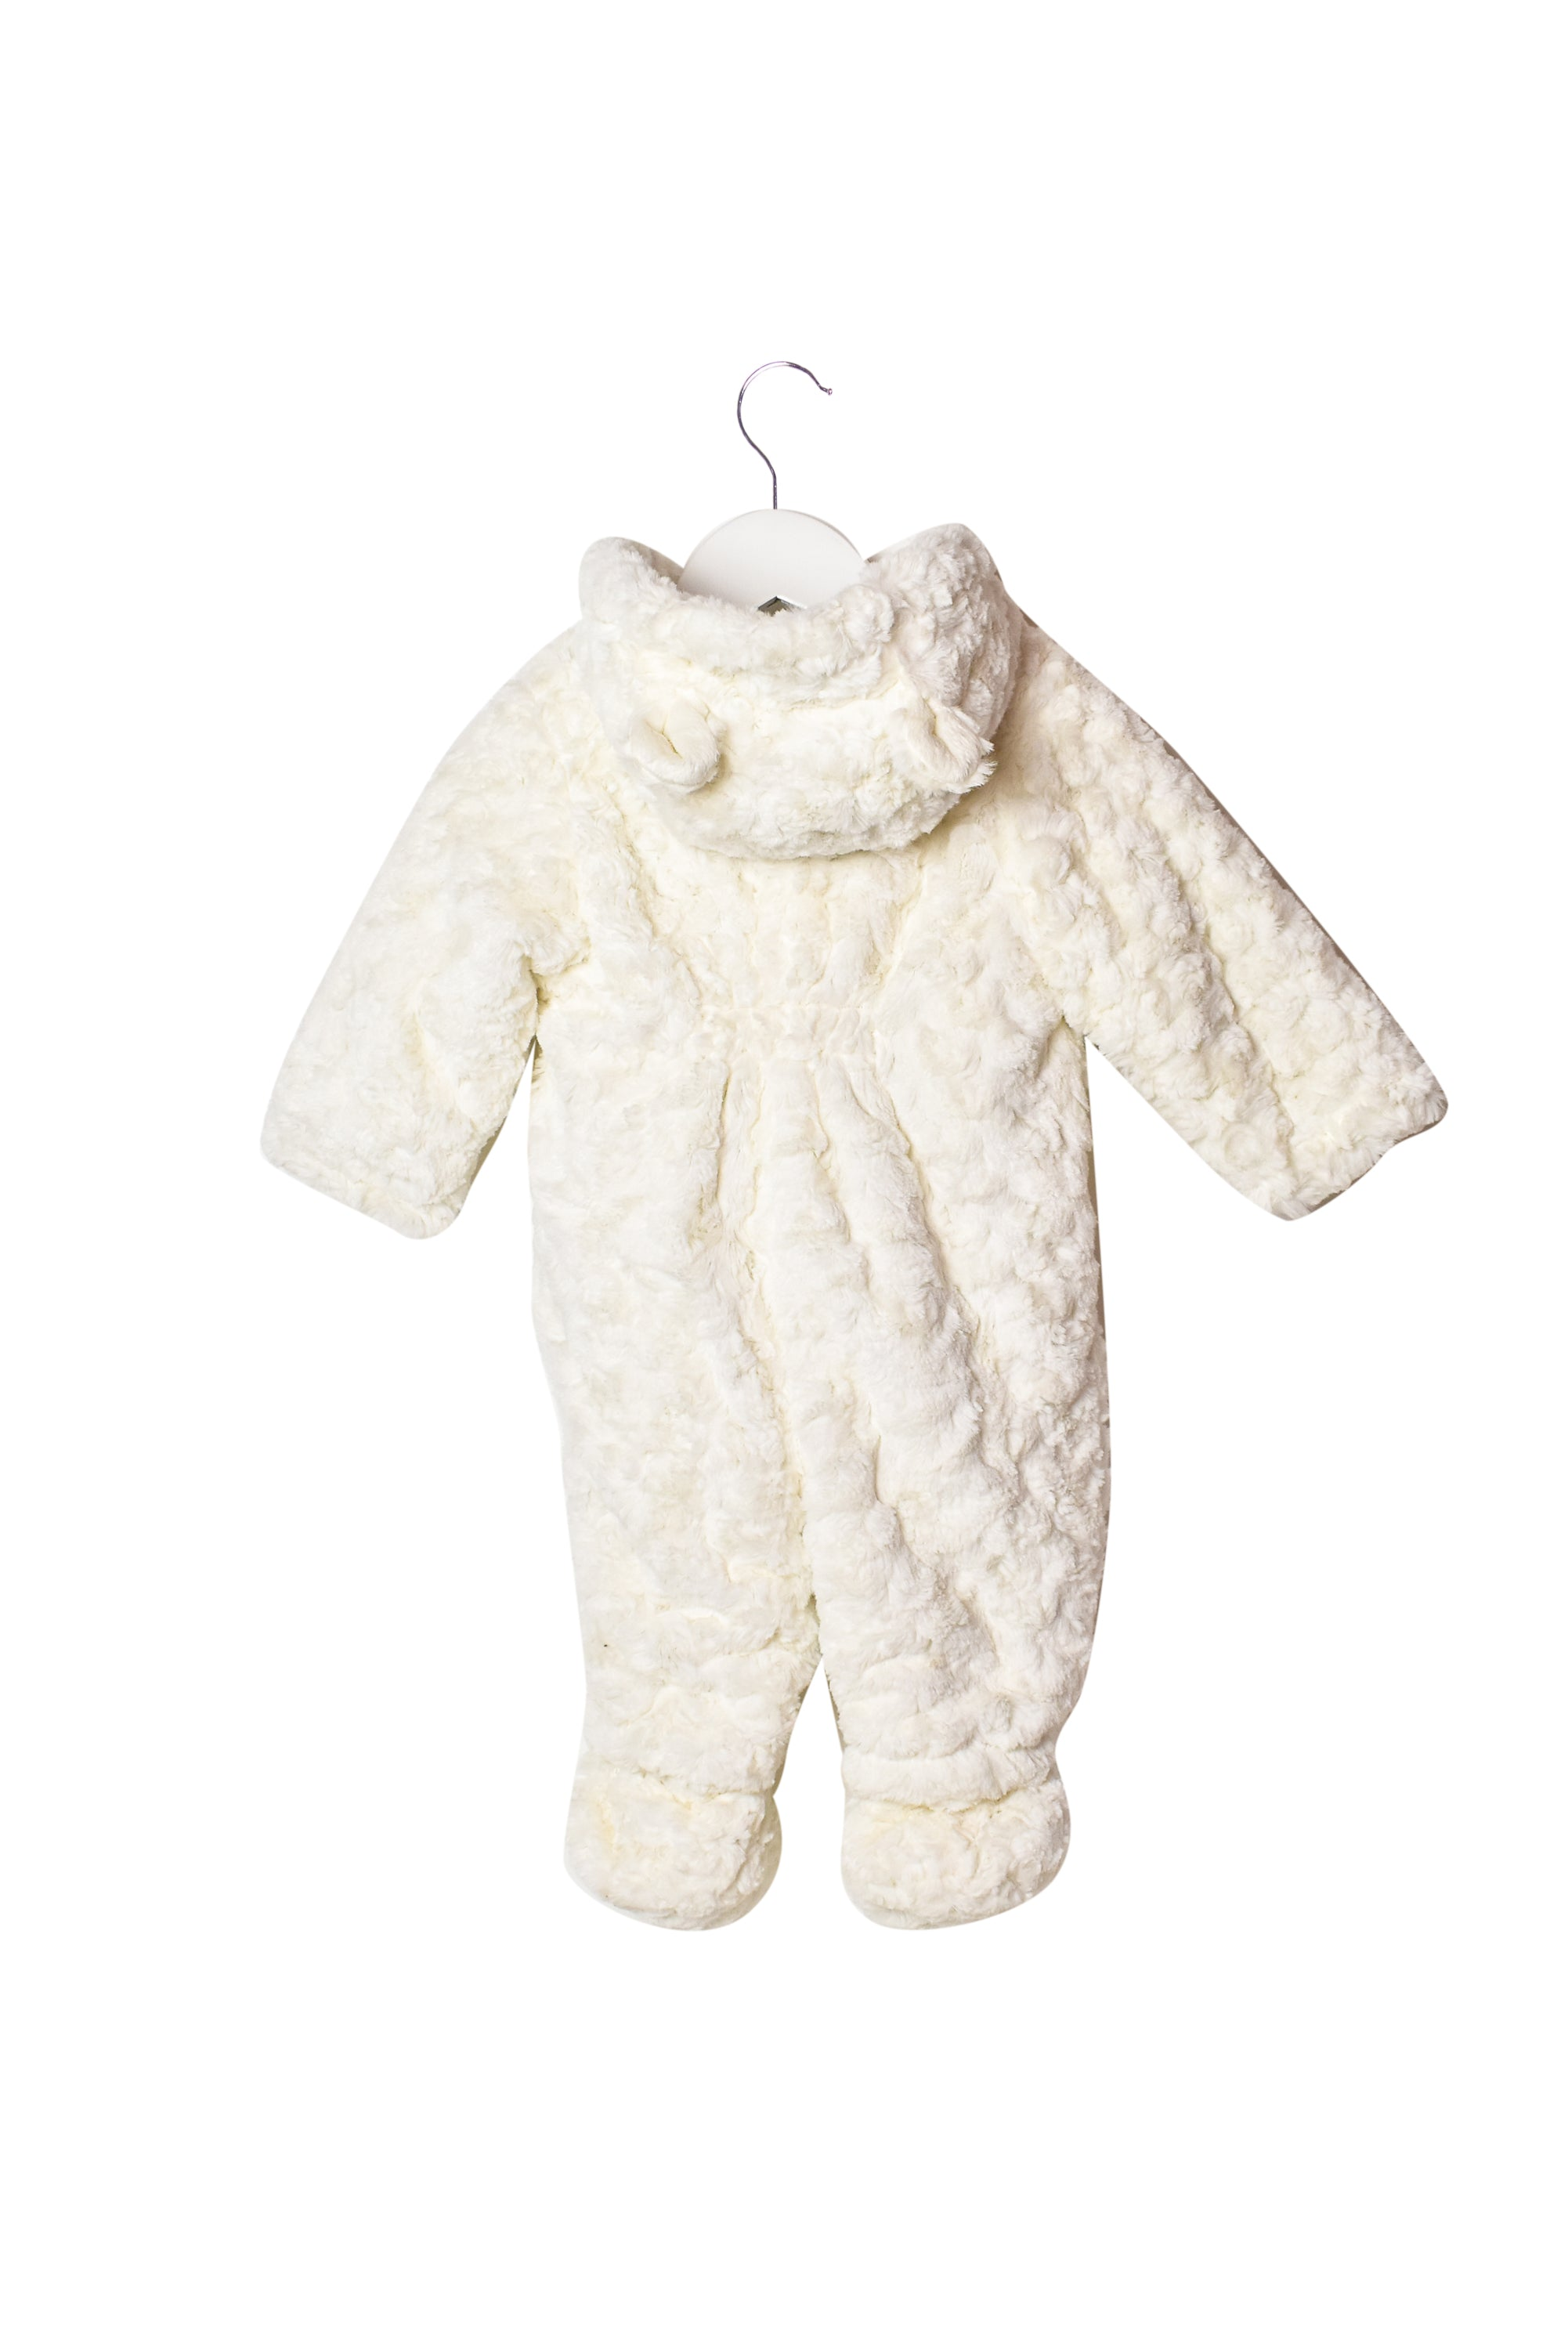 10007744 John Lewis Baby~ Bodysuit 3-6M at Retykle